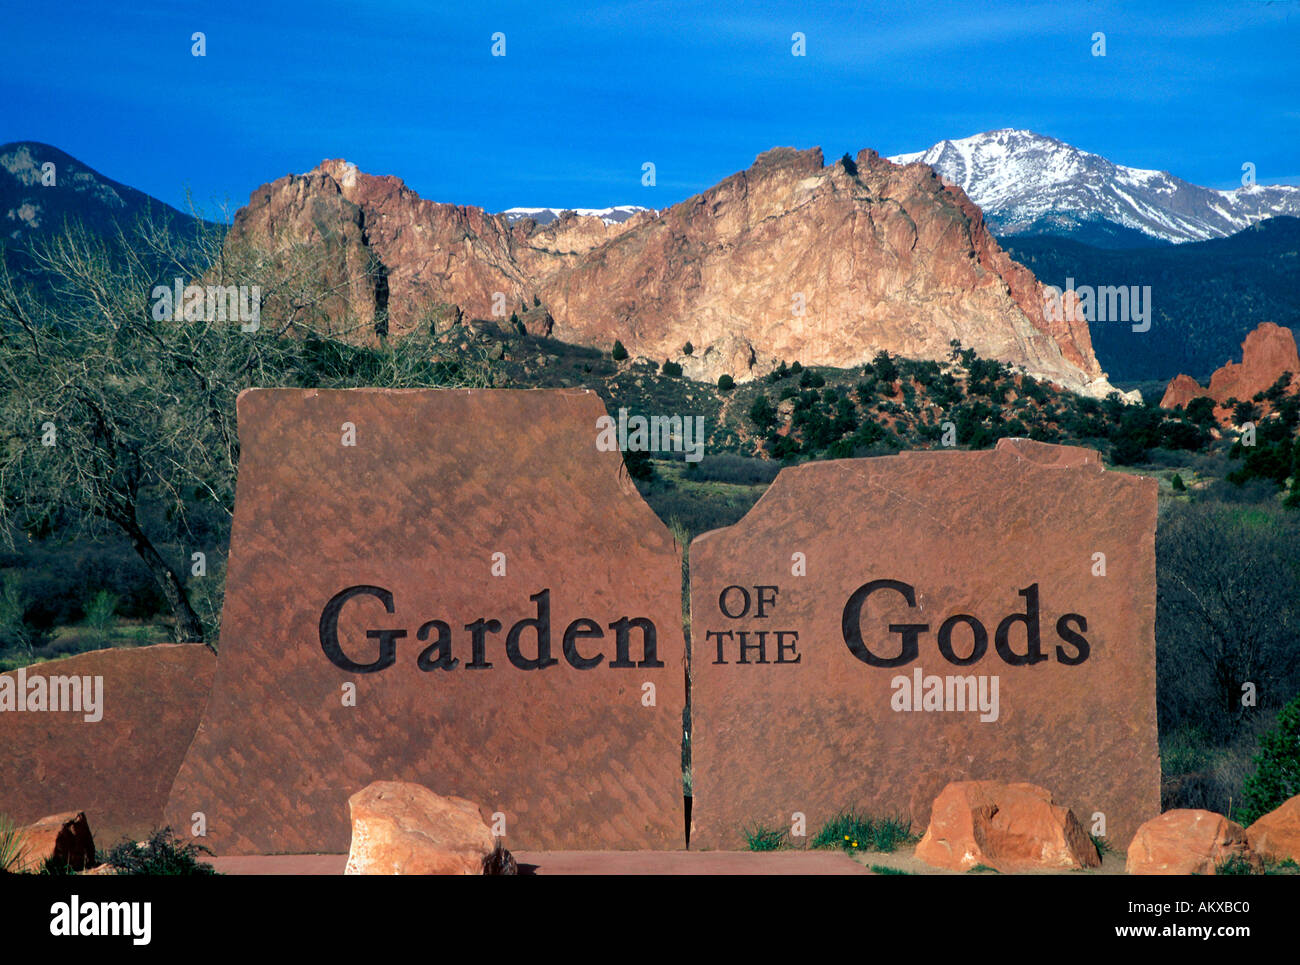 Entrance to the Garden of the Gods Park Stock Photo: 2812863 - Alamy